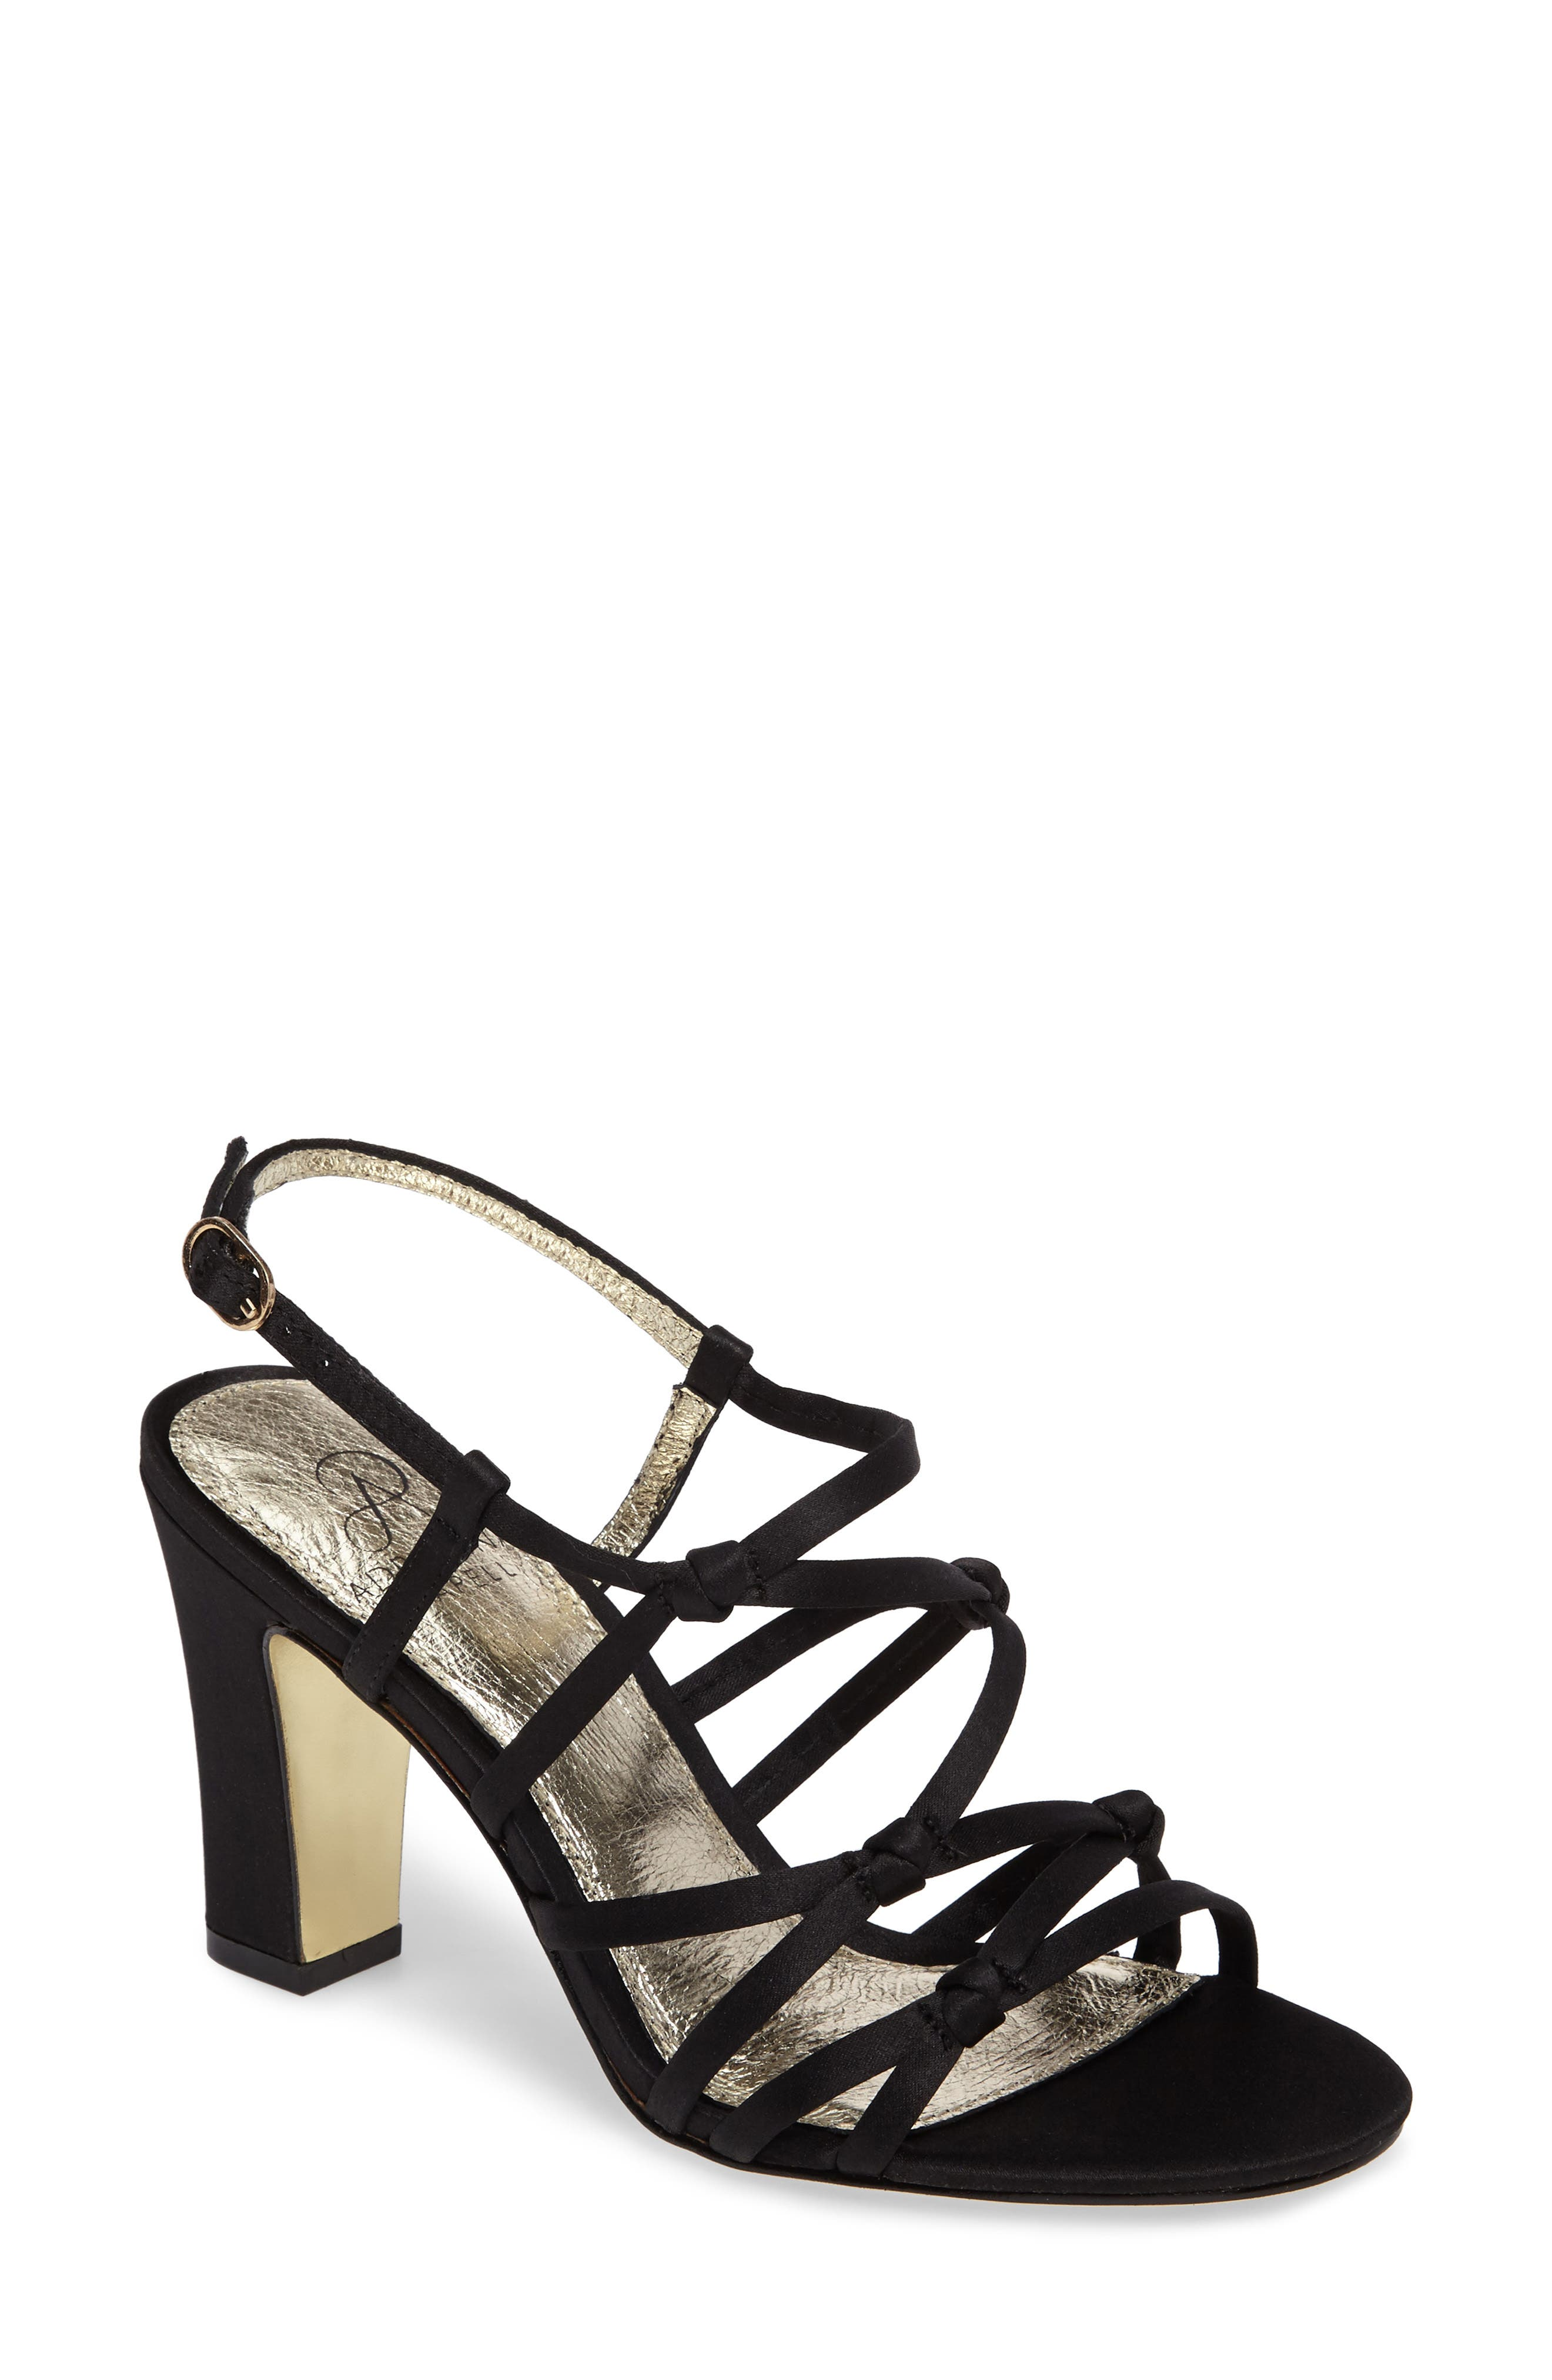 Adelson Knotted Strappy Sandal,                             Main thumbnail 1, color,                             001